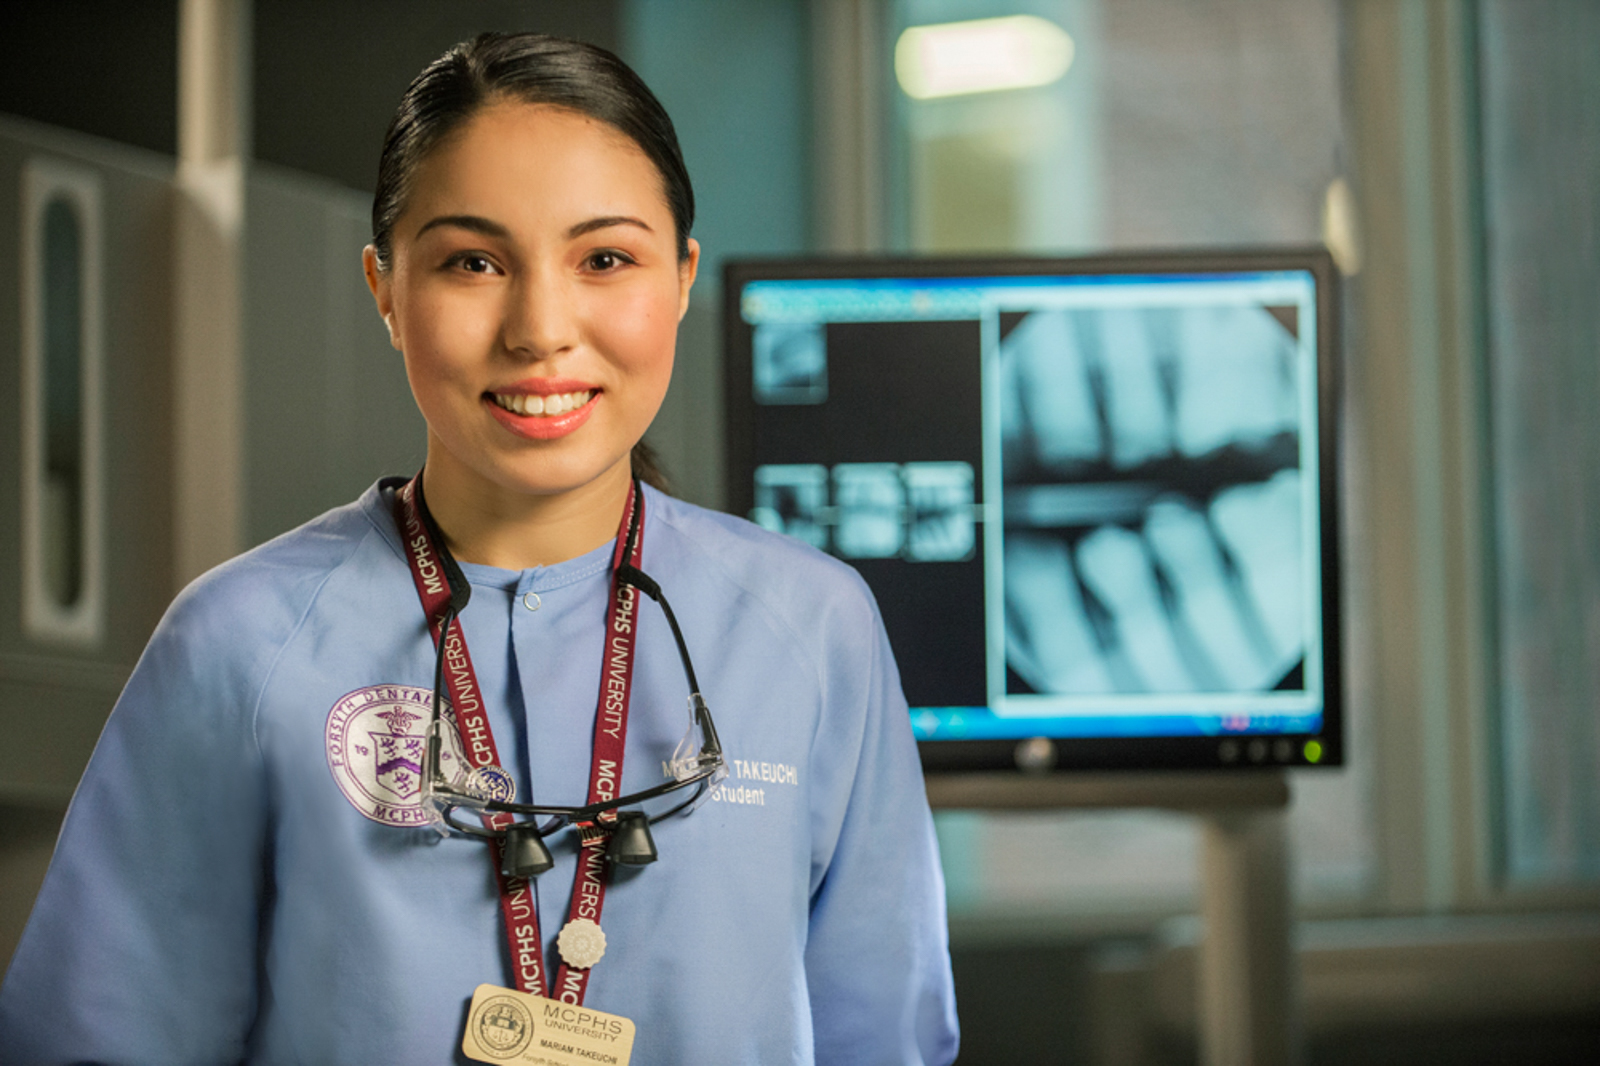 Portrait of female medical student in front of monitor with x-rays